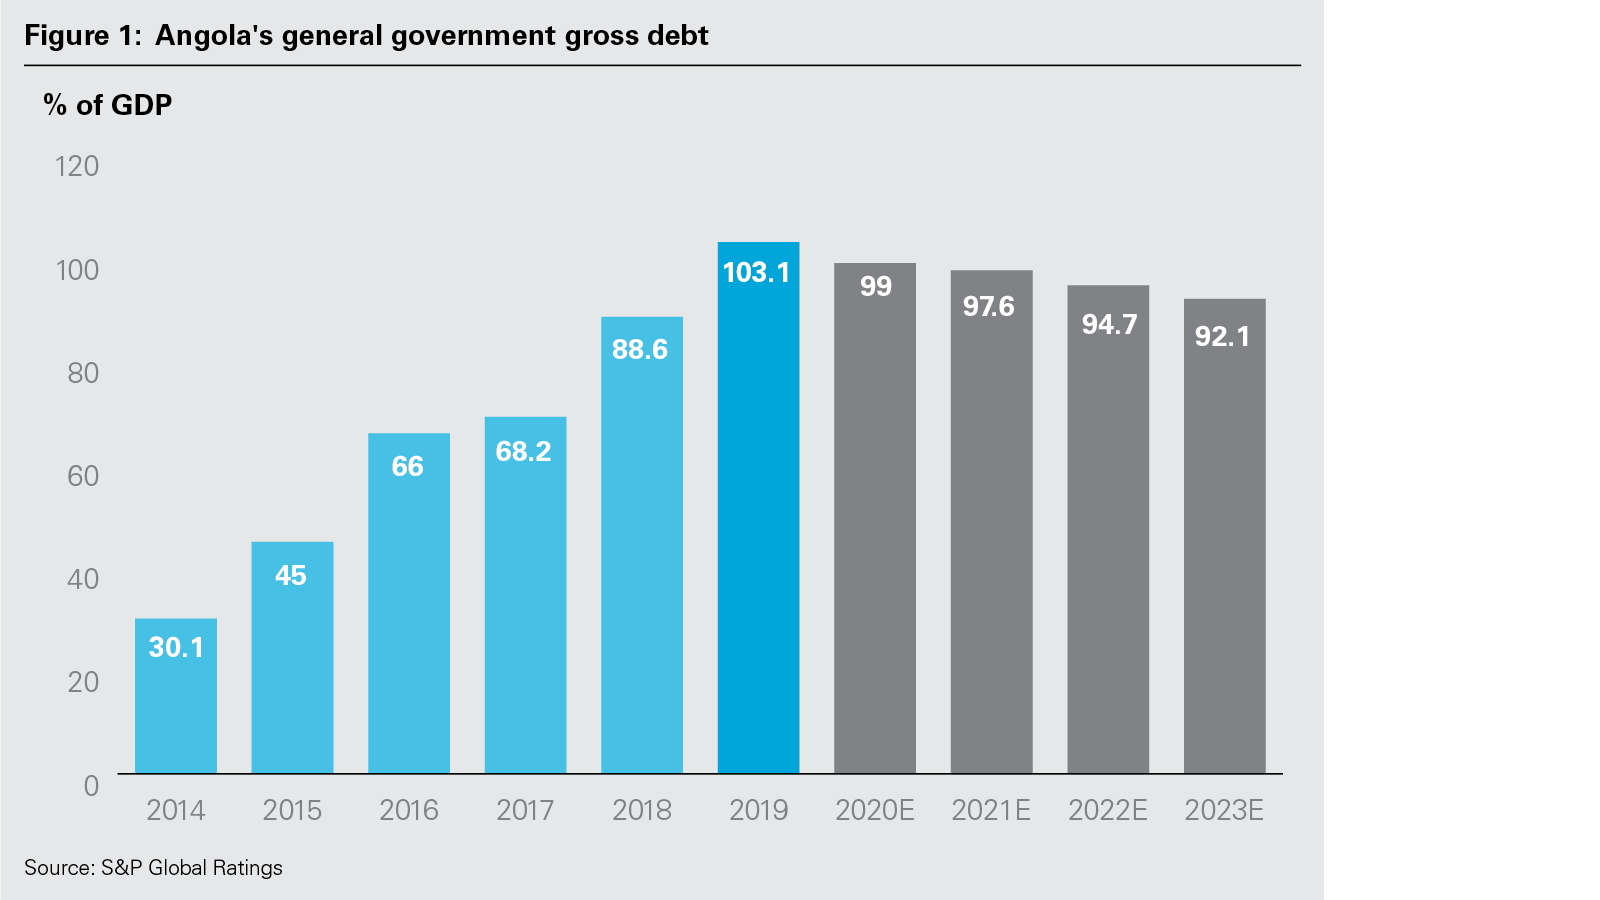 Angola's General Government Gross Debt (PNG)